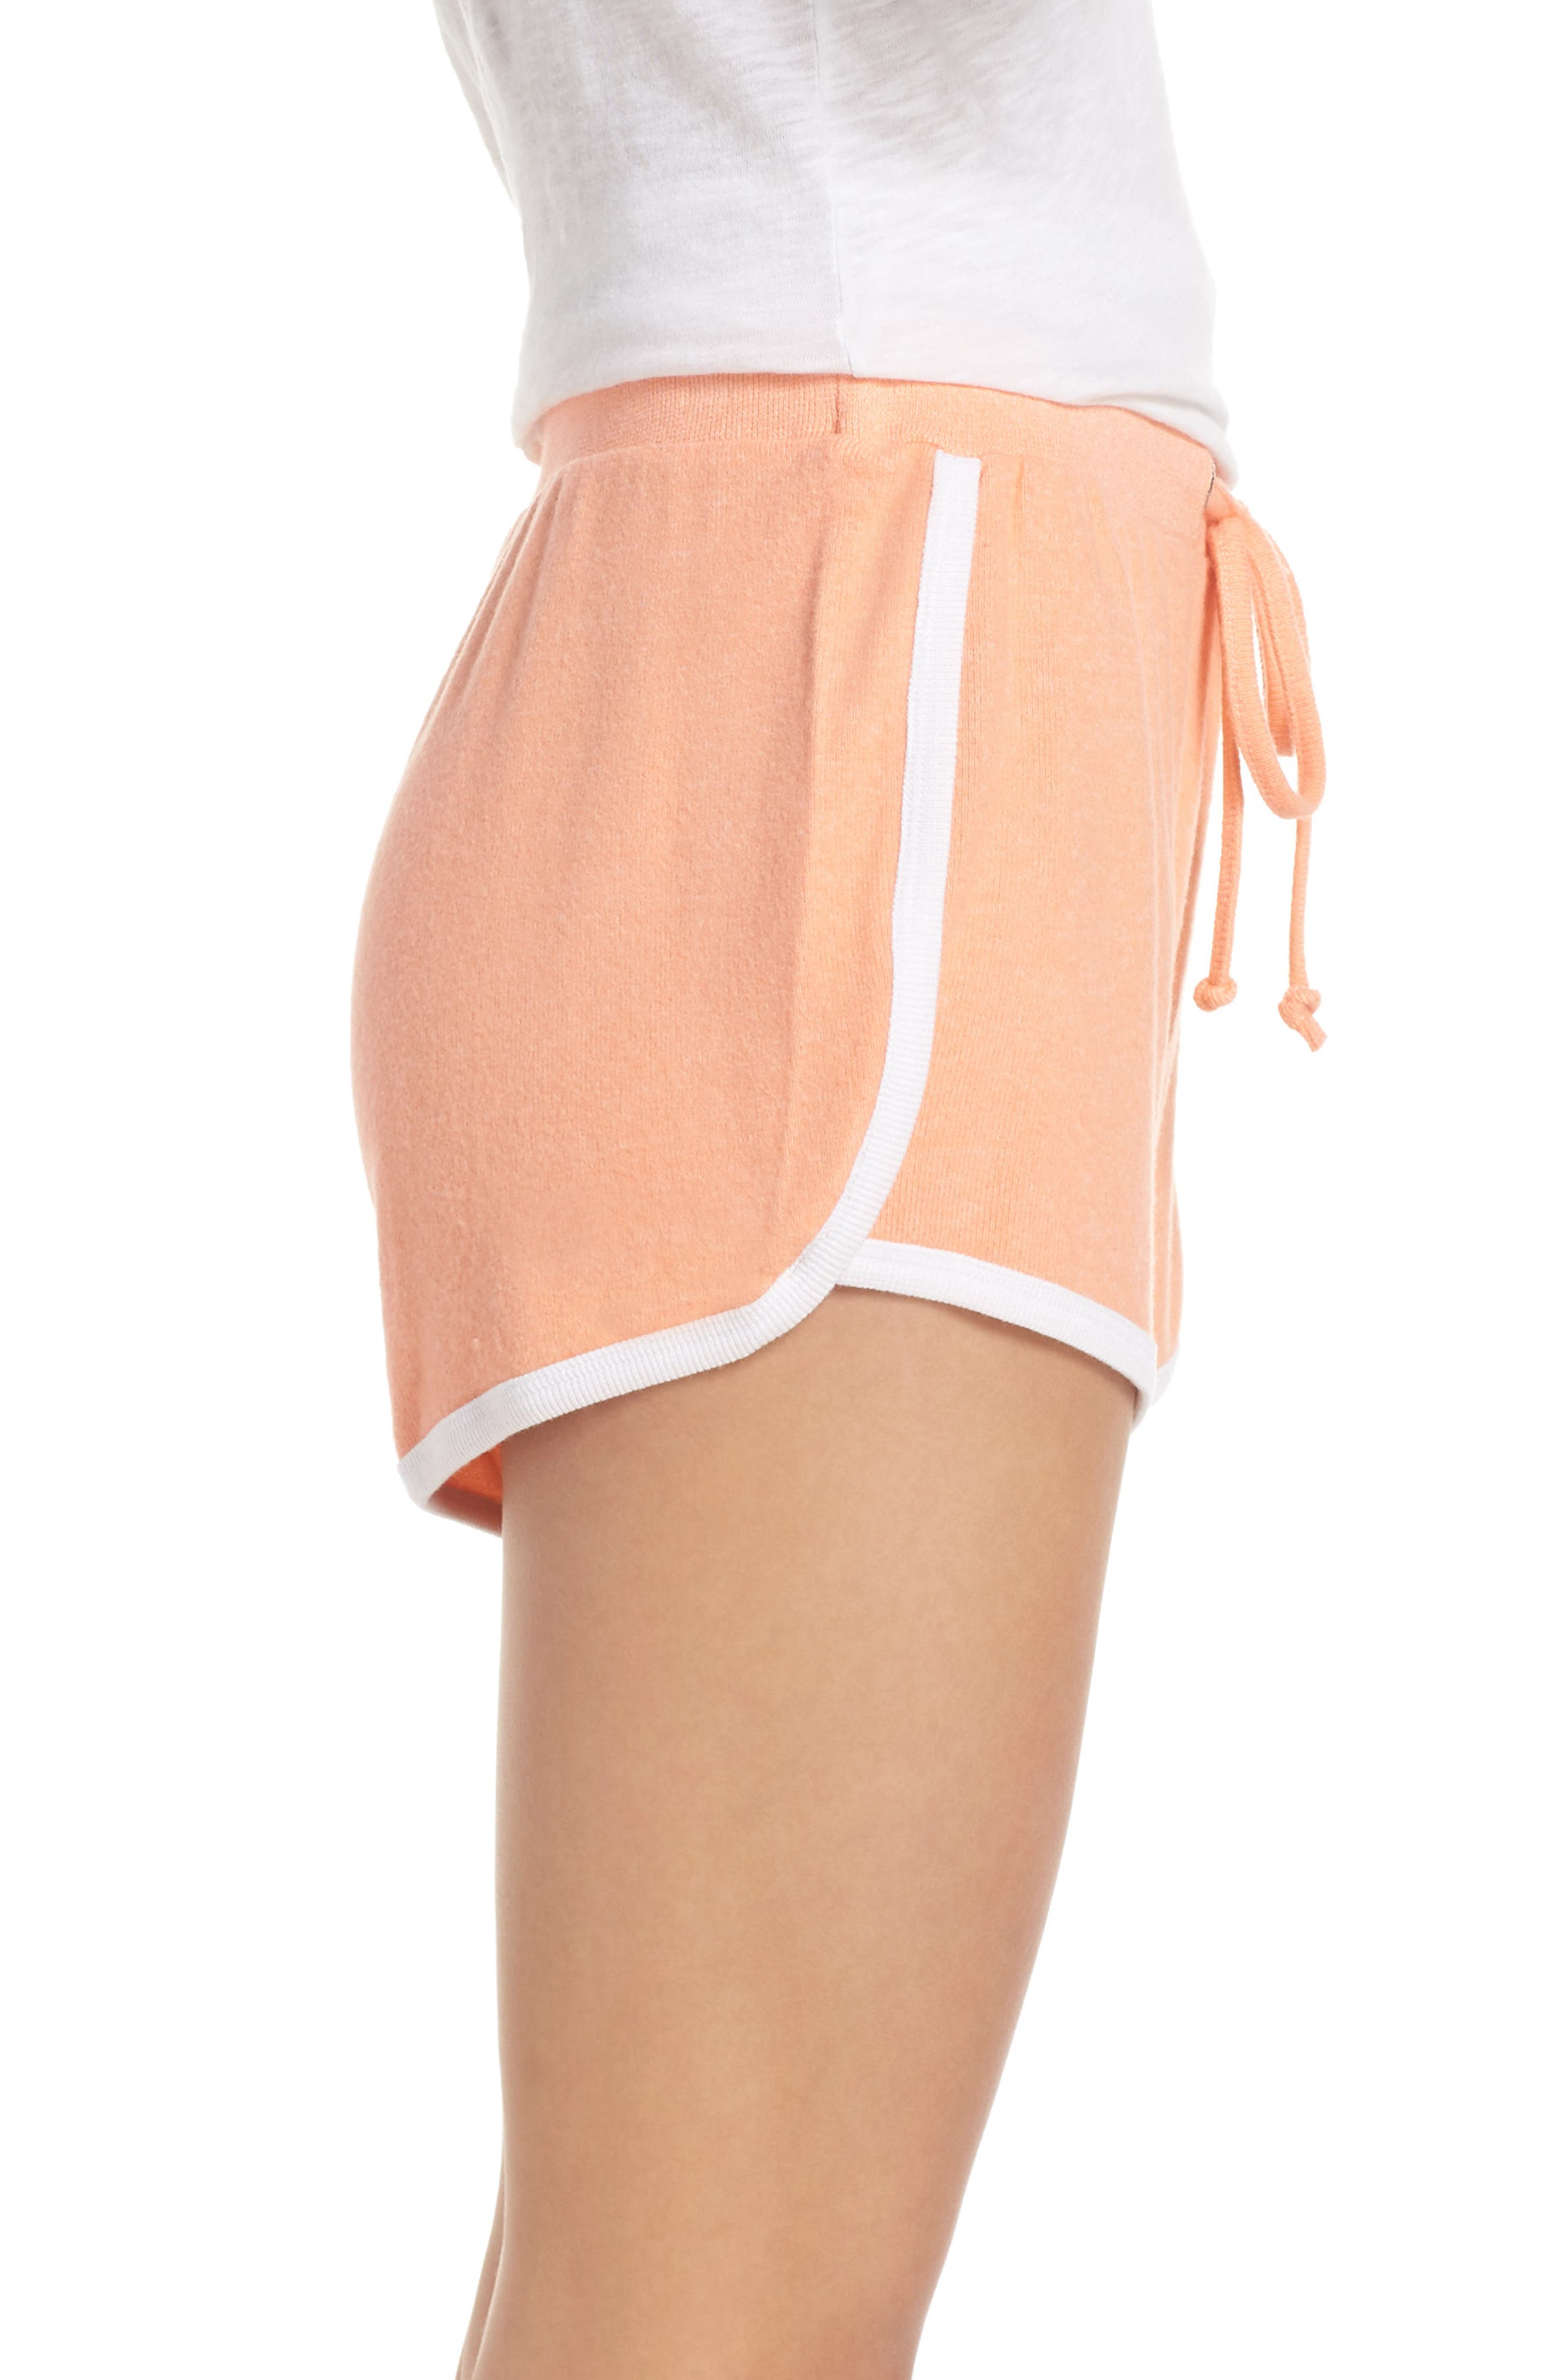 Too Cool Shorts,                             Alternate thumbnail 3, color,                             CORAL PINK